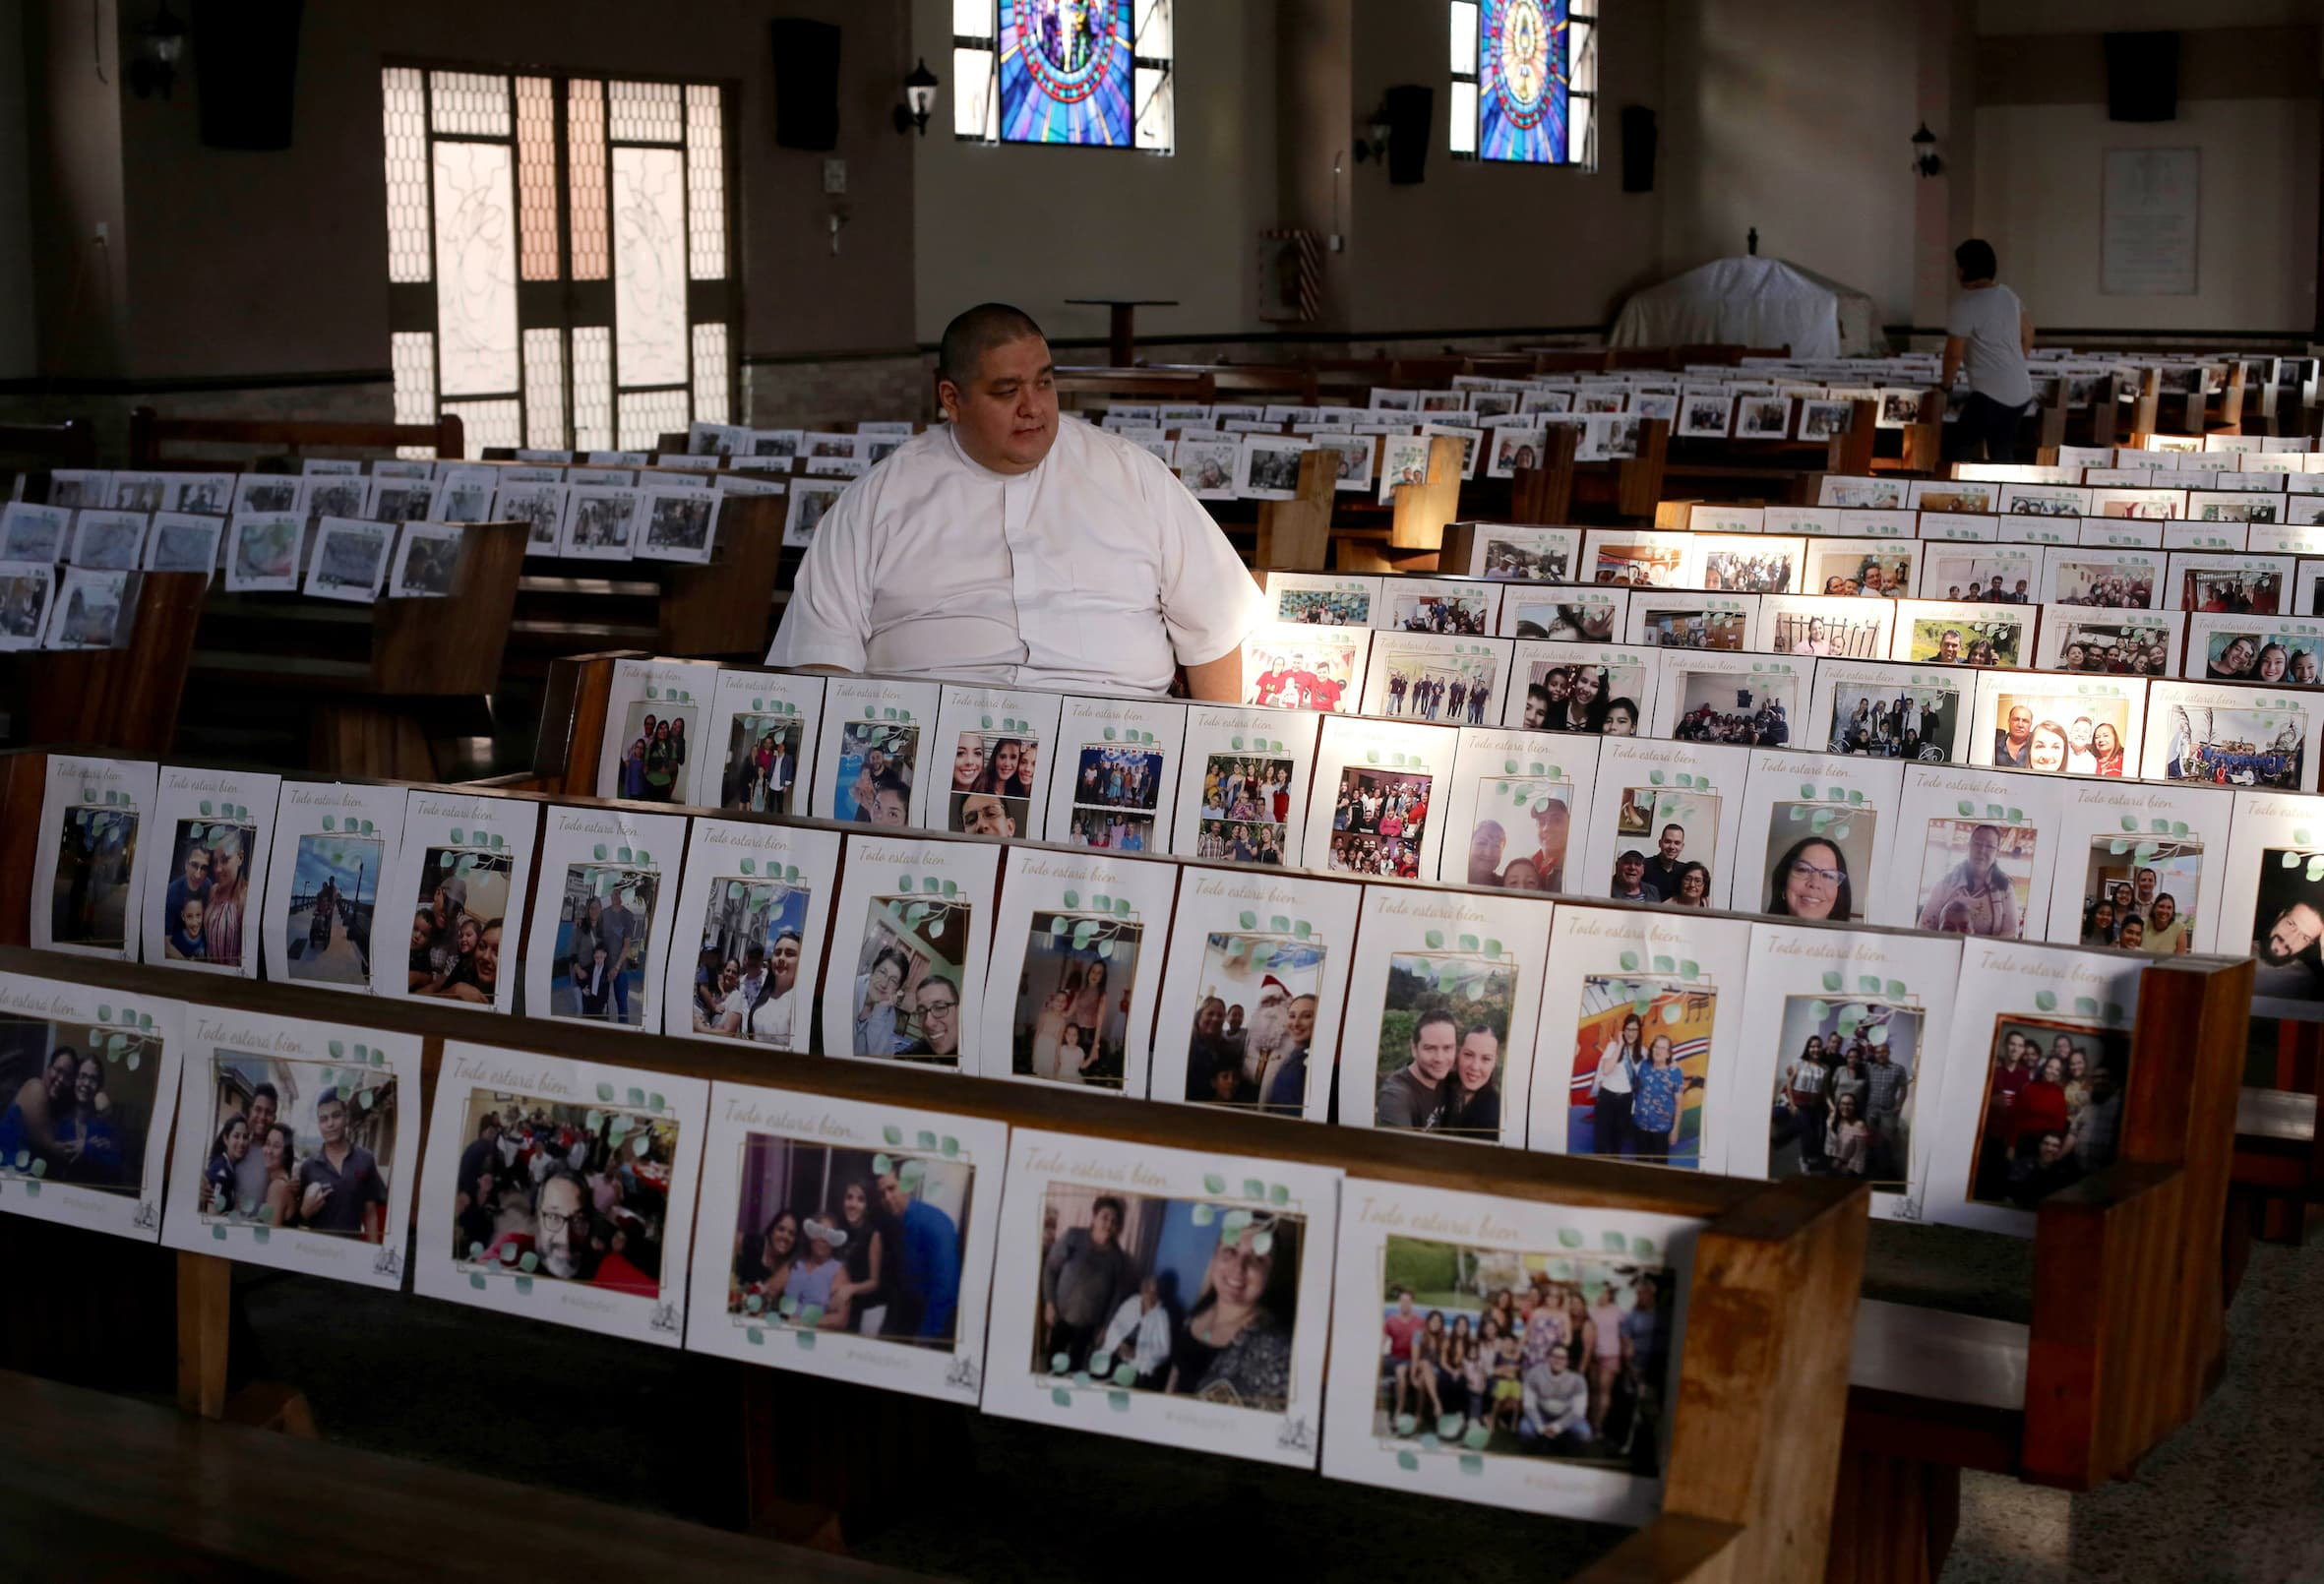 Priest Victor Manuel Jimenez sits among photos of the faithful displayed on the church's benches before the live stream of a mass at the Nuestra Senora de Fatima church, as the spread of the coronavirus disease (COVID-19) continues, in San Jose, Costa Rica April 8, 2020. — Reuters